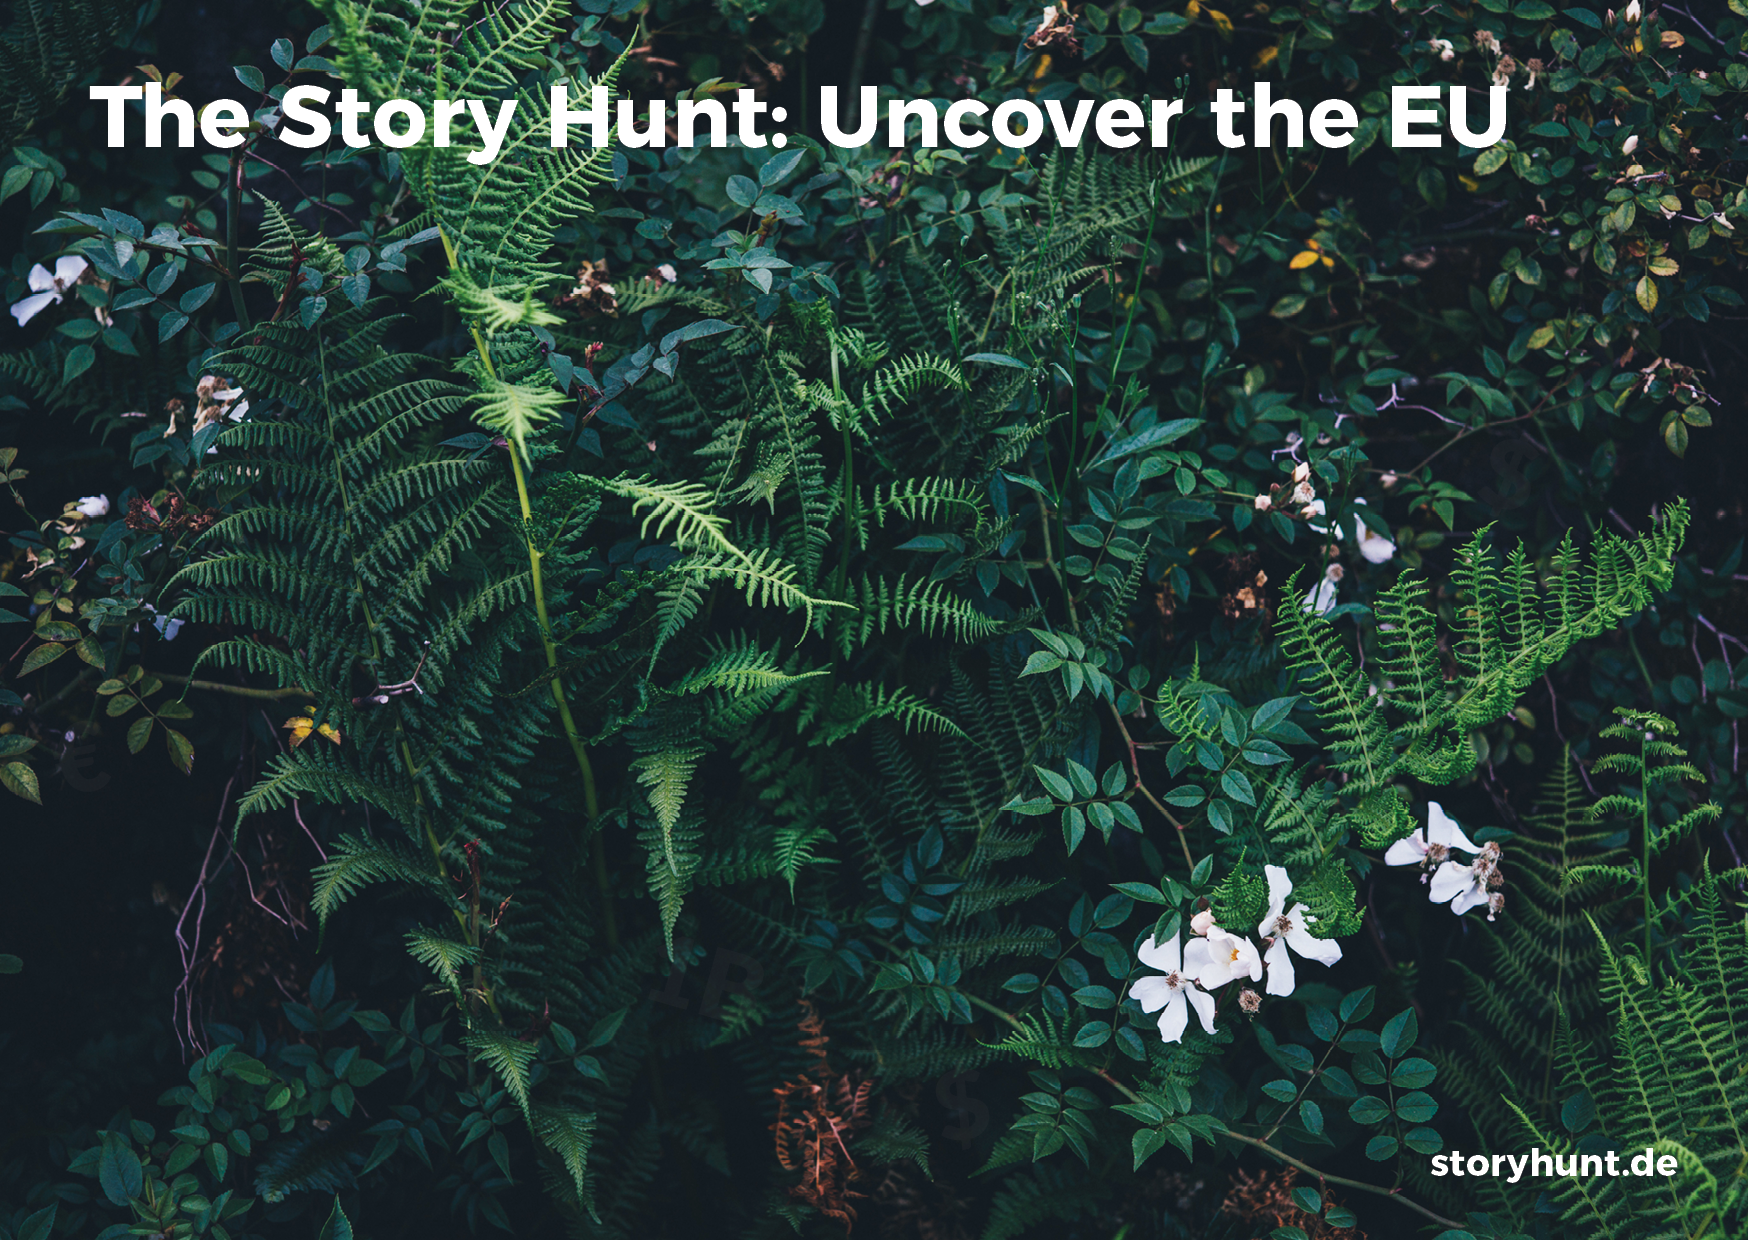 Join The Story Hunt - Uncover the EU!